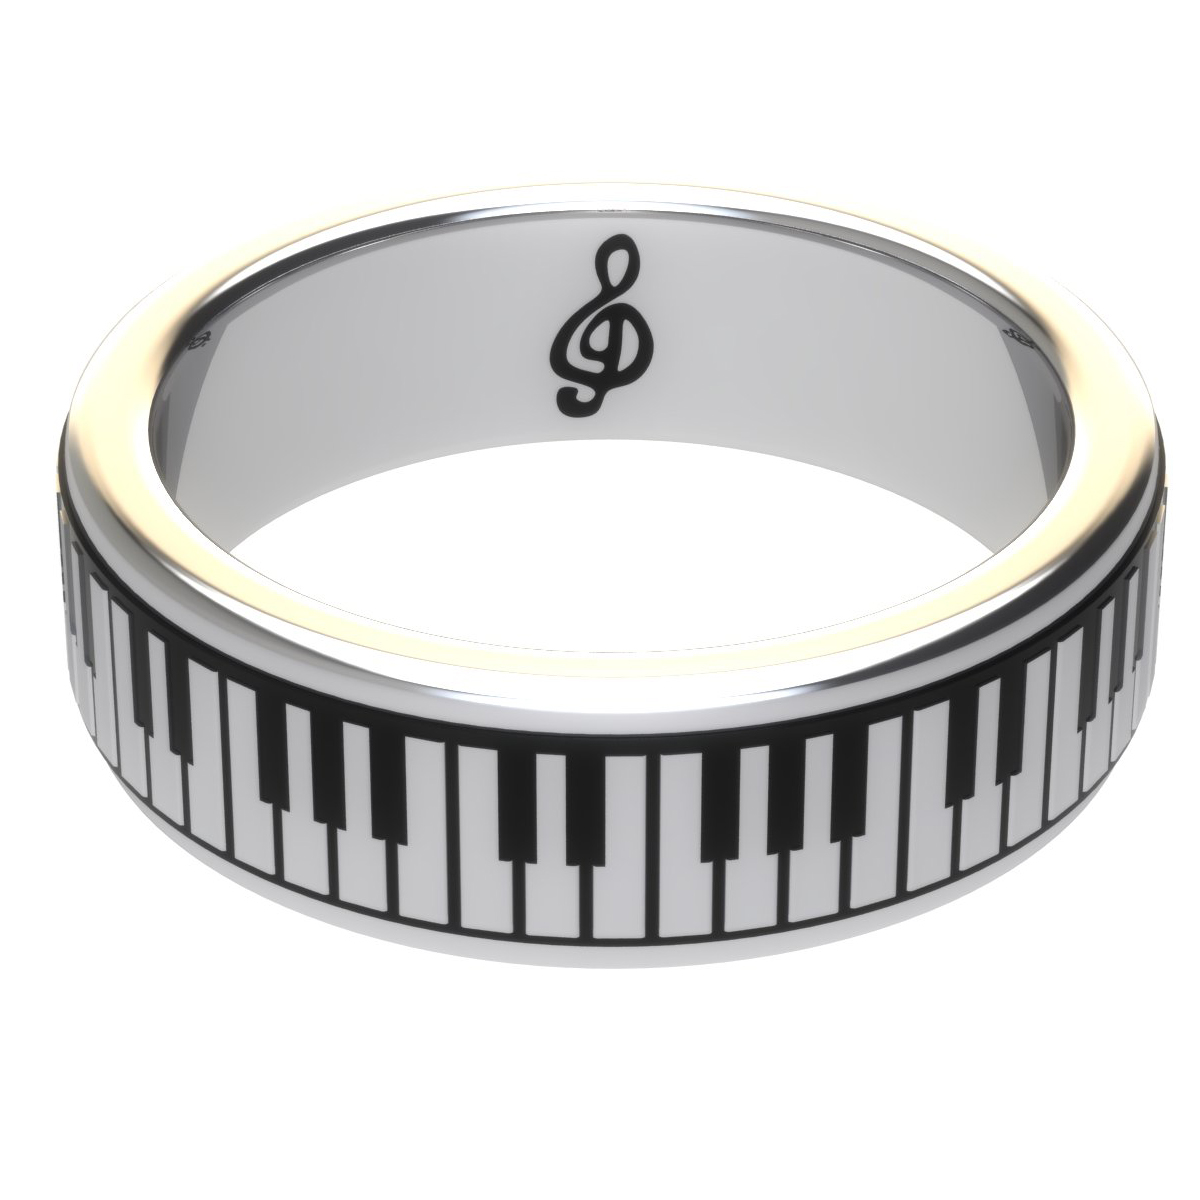 pianoring silver the piano ring. Black Bedroom Furniture Sets. Home Design Ideas